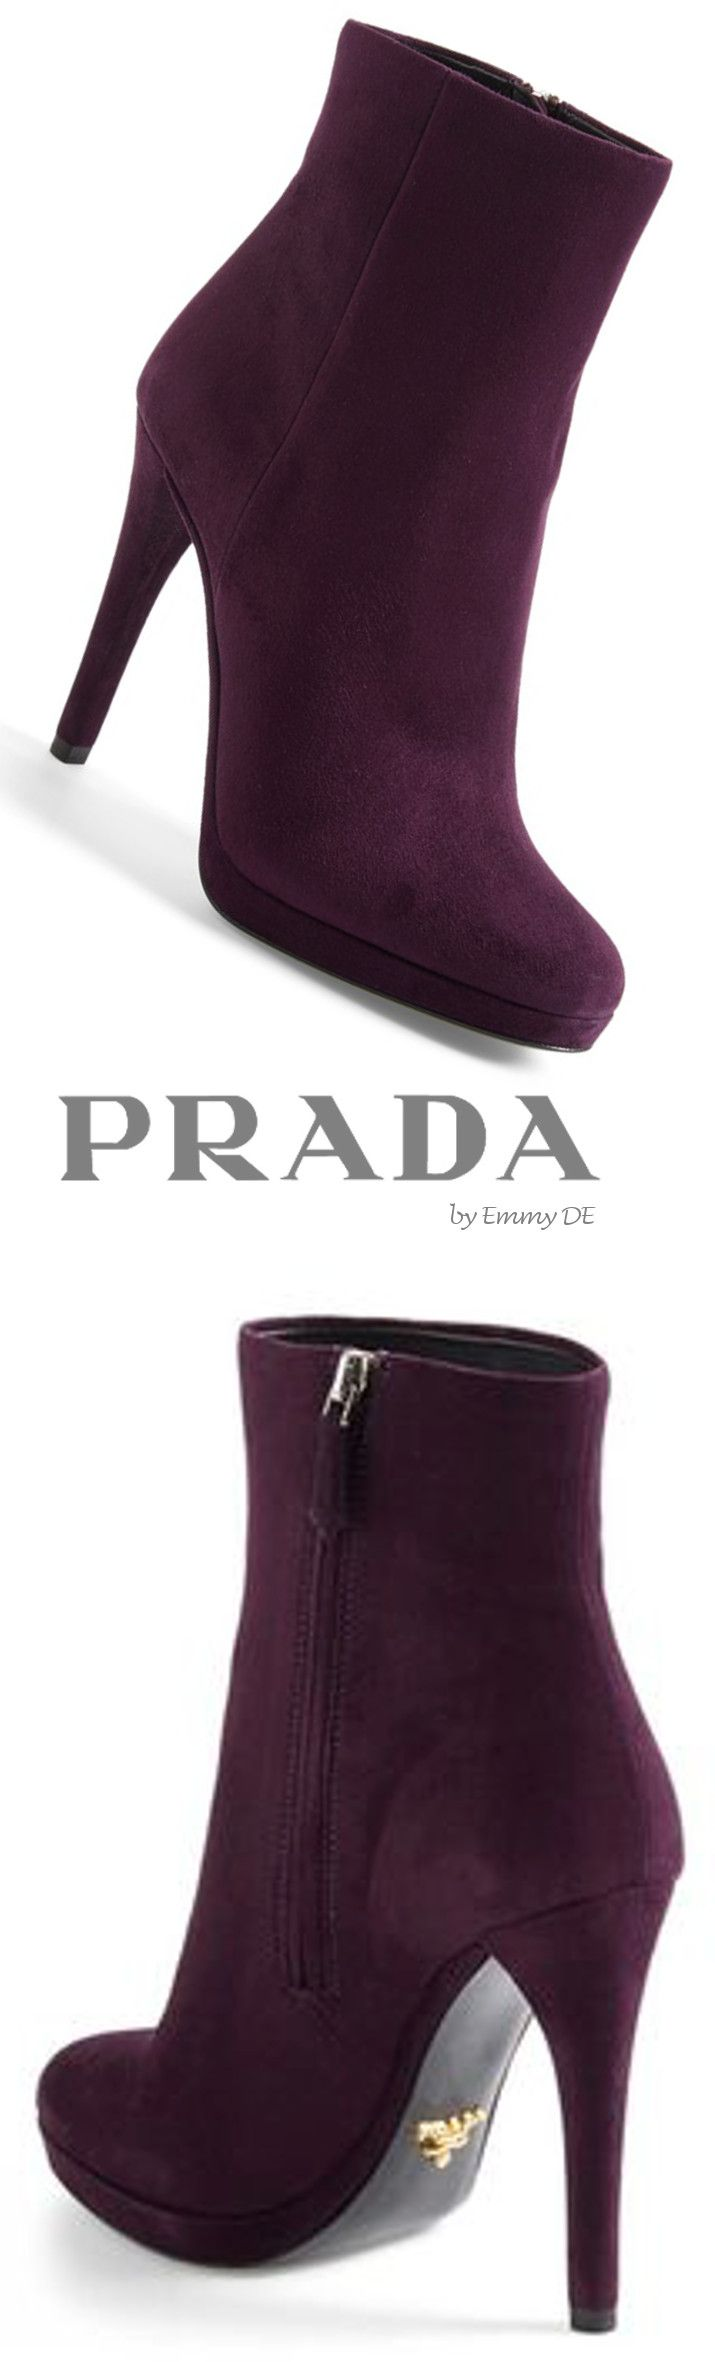 Emmy DE * Prada Mid Suede Boot  |  @  ladies boots